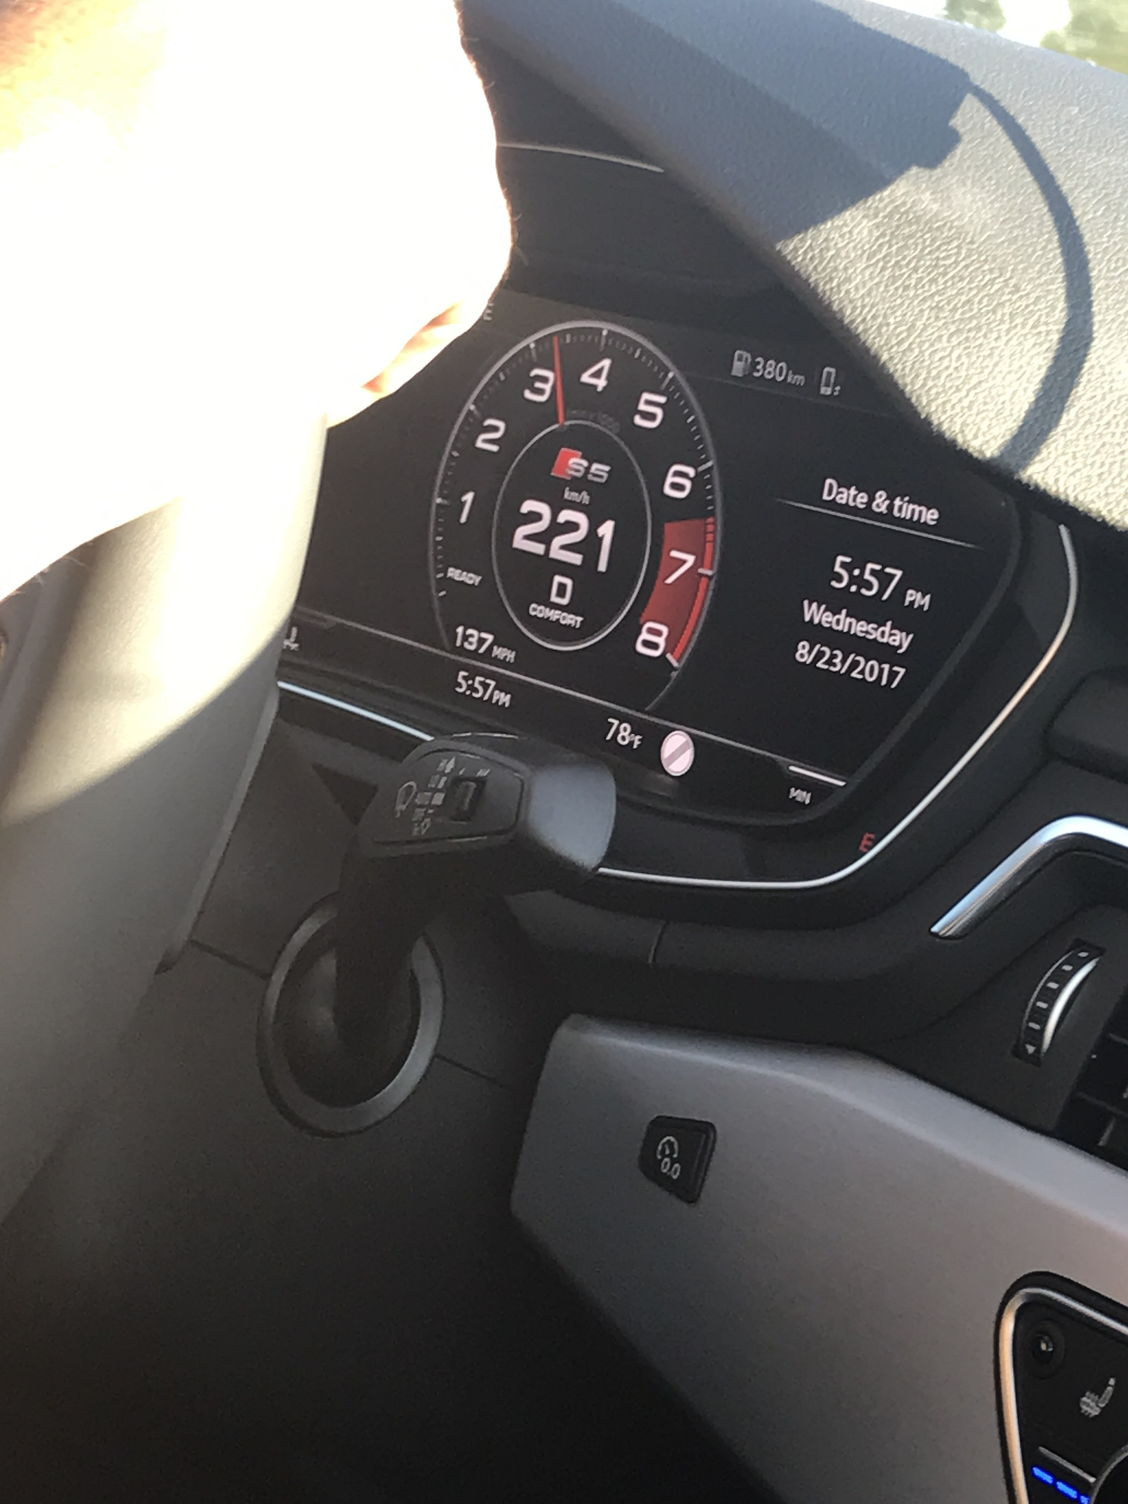 Per recommendation from the audi specialist to going above 3500 rpm